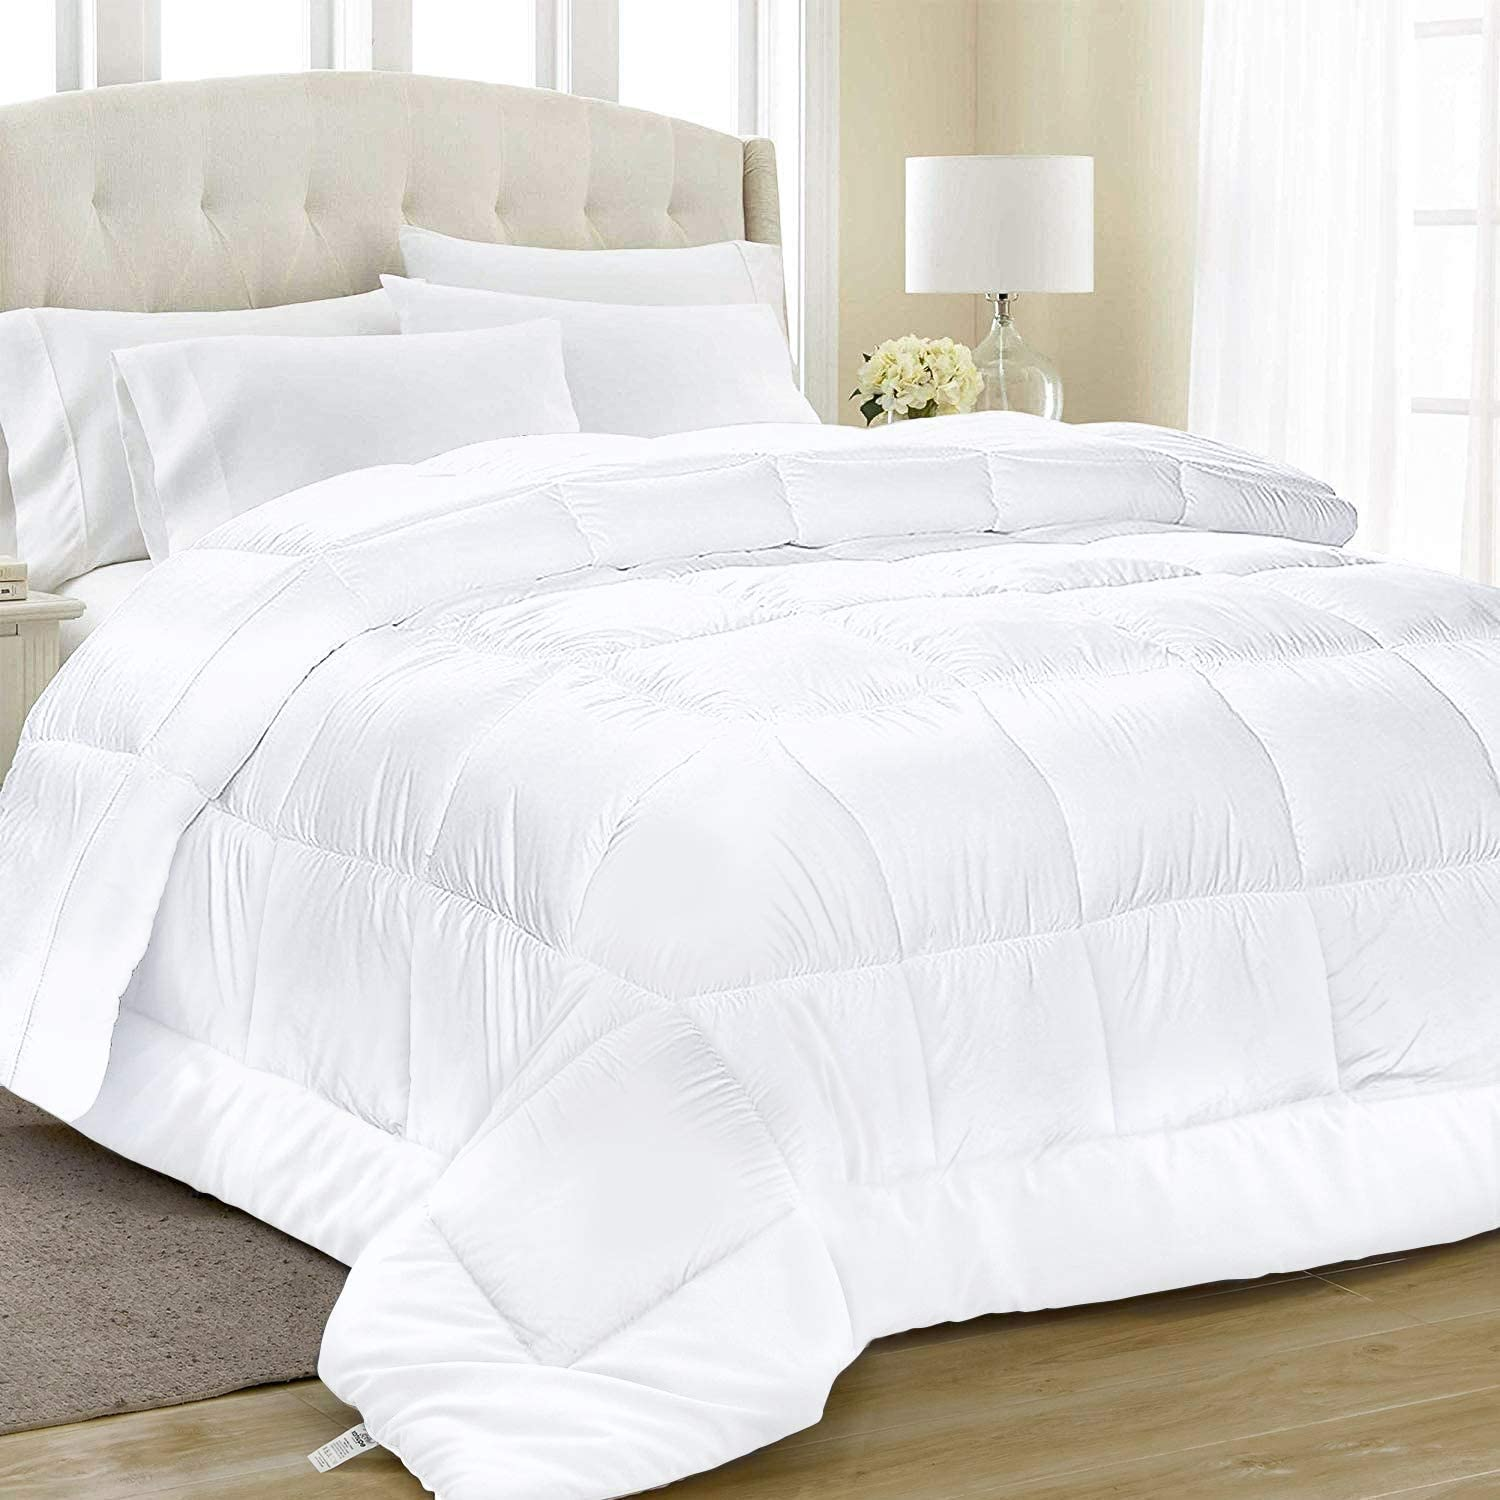 Equinox All-Season White Quilted Comforter - 88 x 88 Inches - Goose Down Alternative Queen Comforter - Duvet Insert Set - Machine Washable - Plush Microfiber Fill (350 GSM): Home & Kitchen